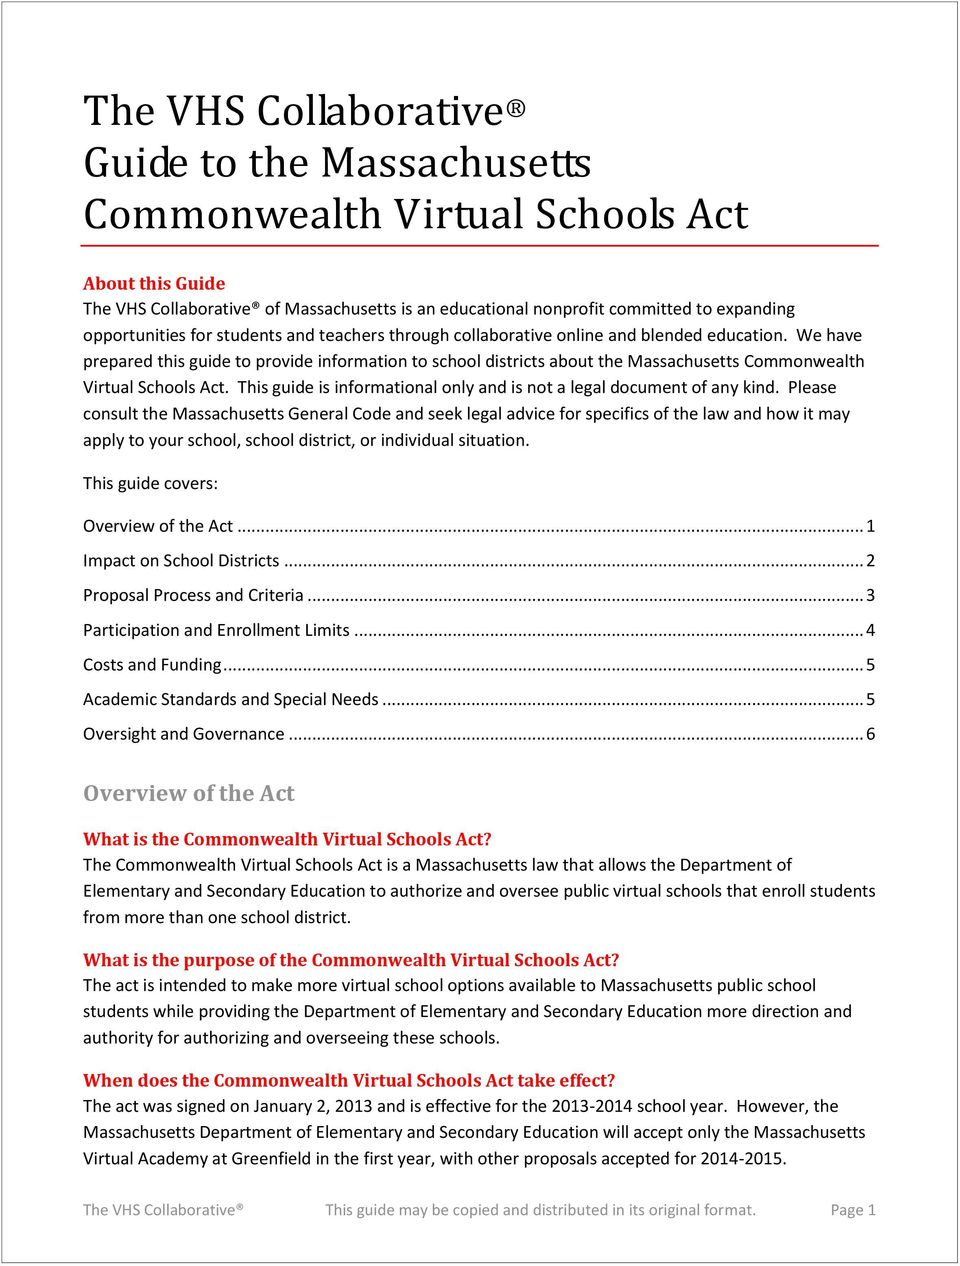 We have prepared this guide to provide information to school districts about the Massachusetts Commonwealth Virtual Schools Act.